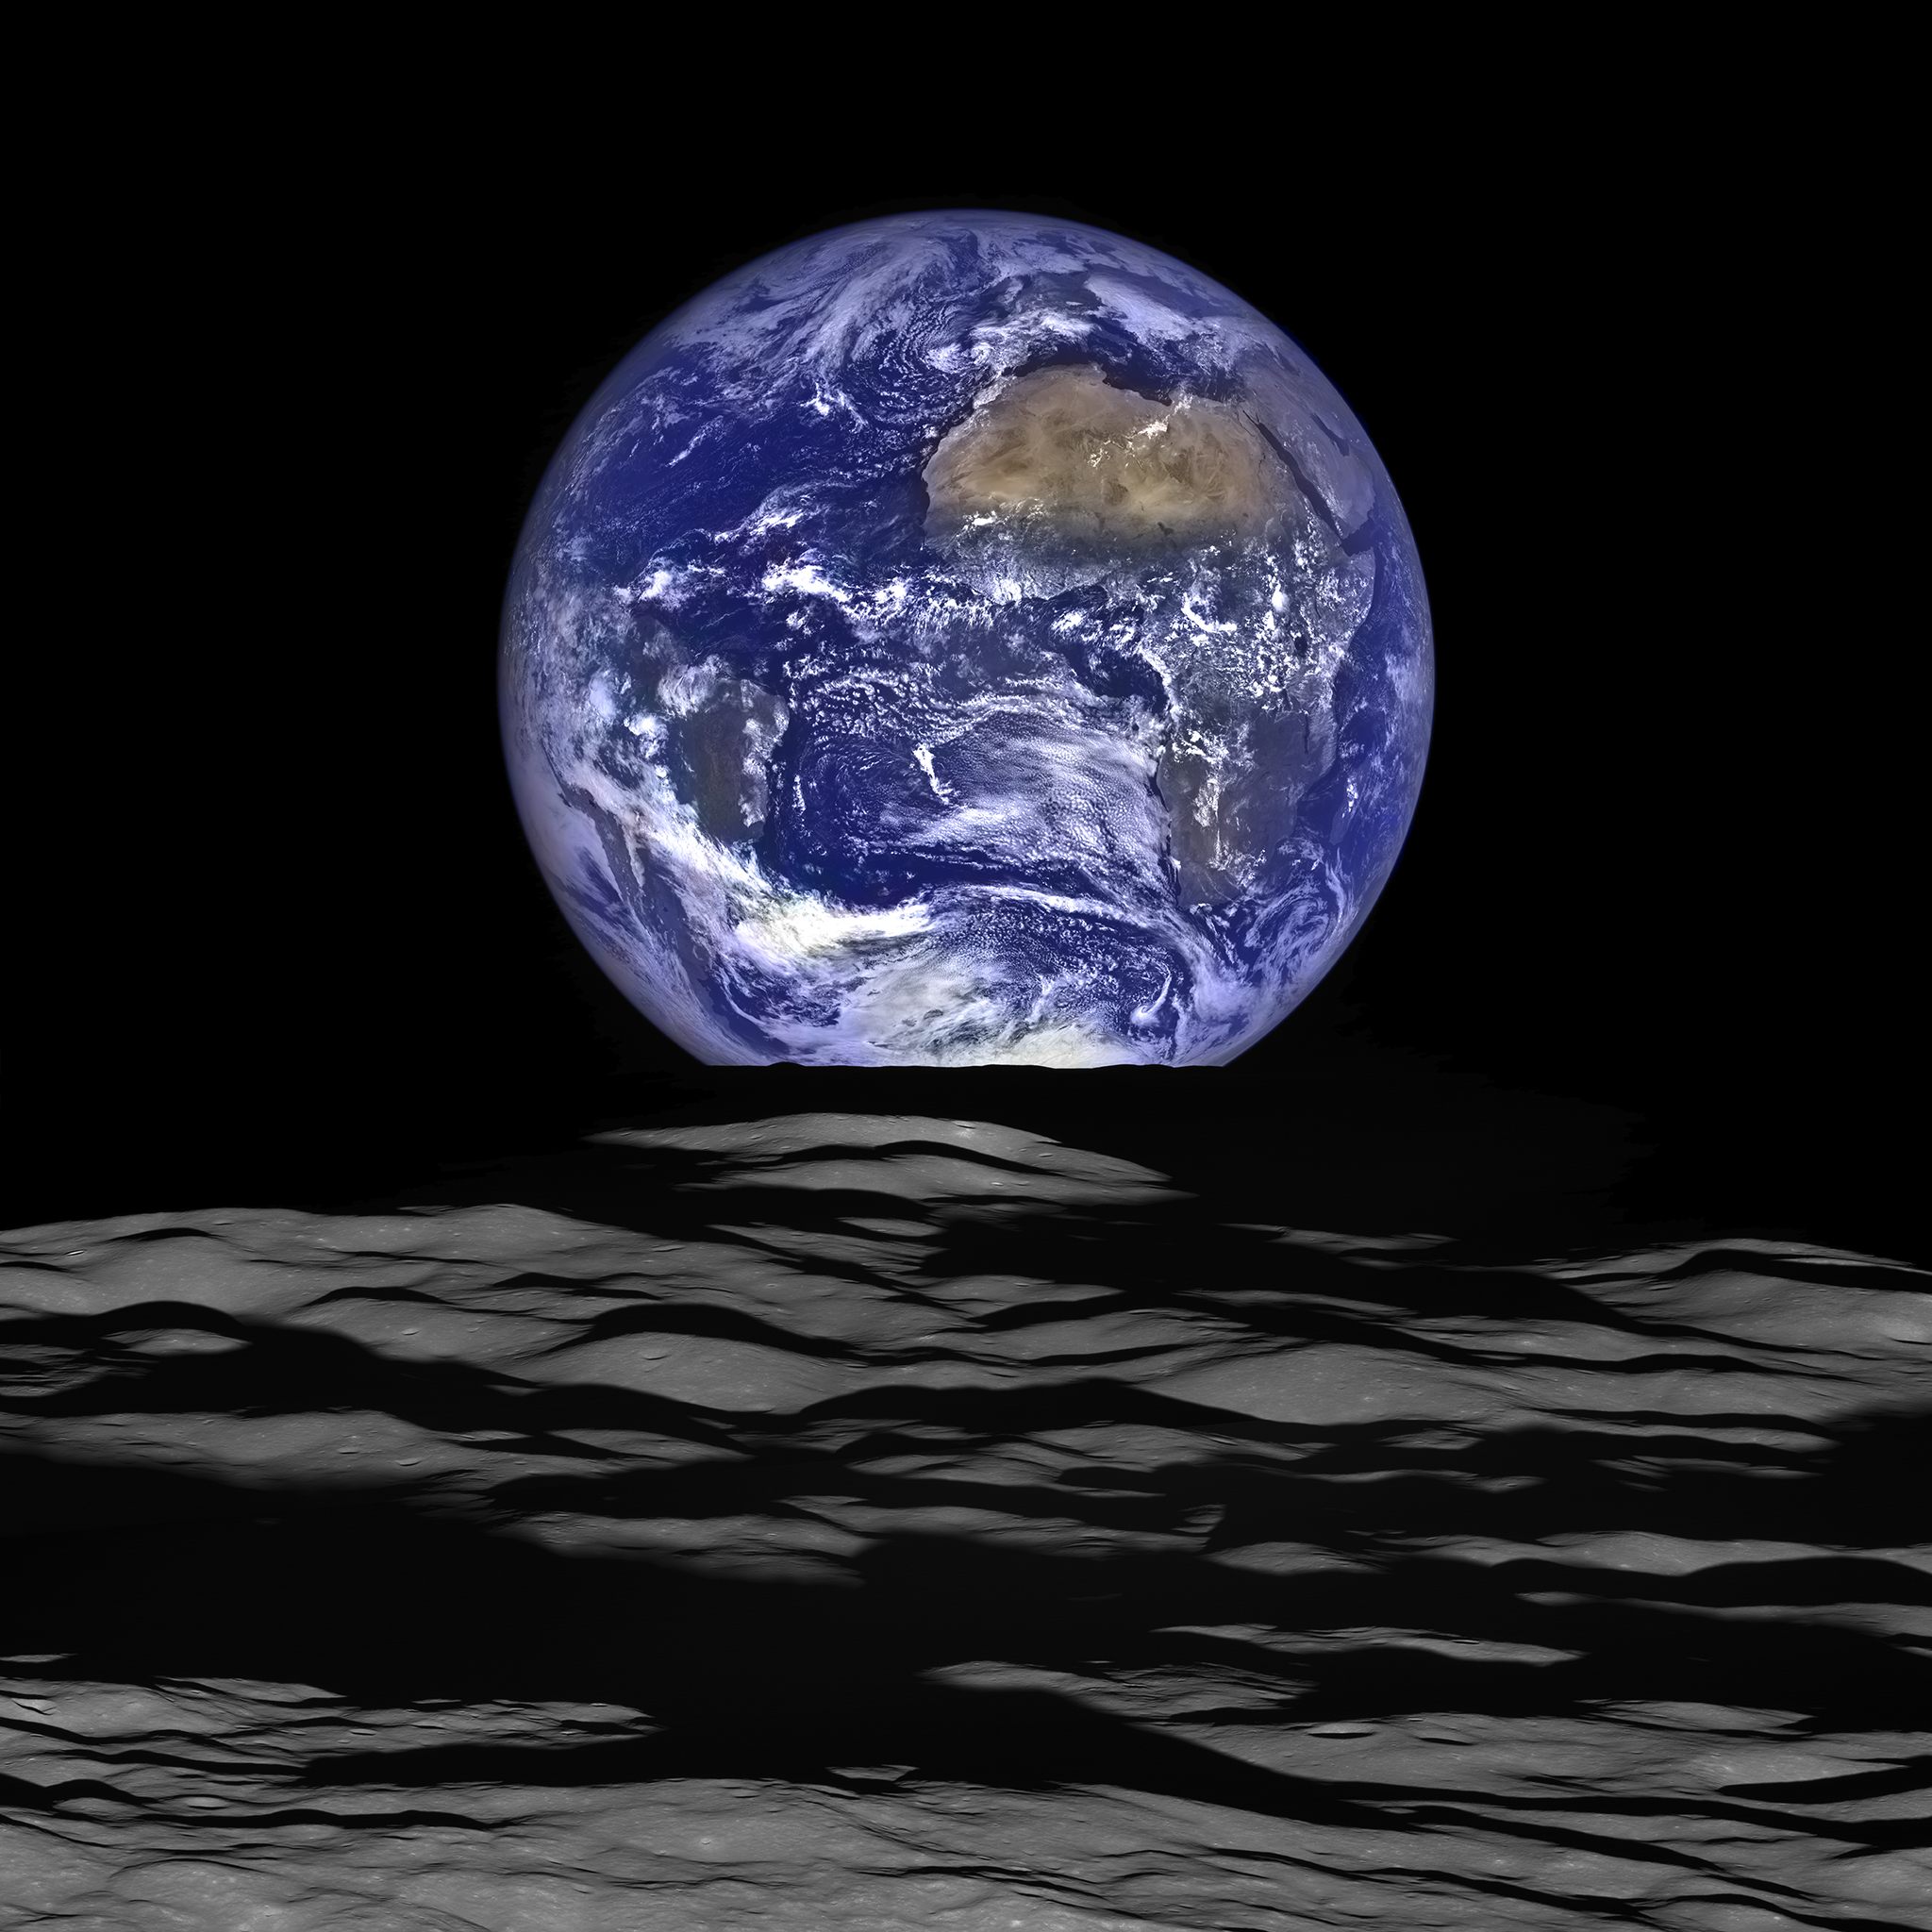 earthrise from the moon, NASA, 2015